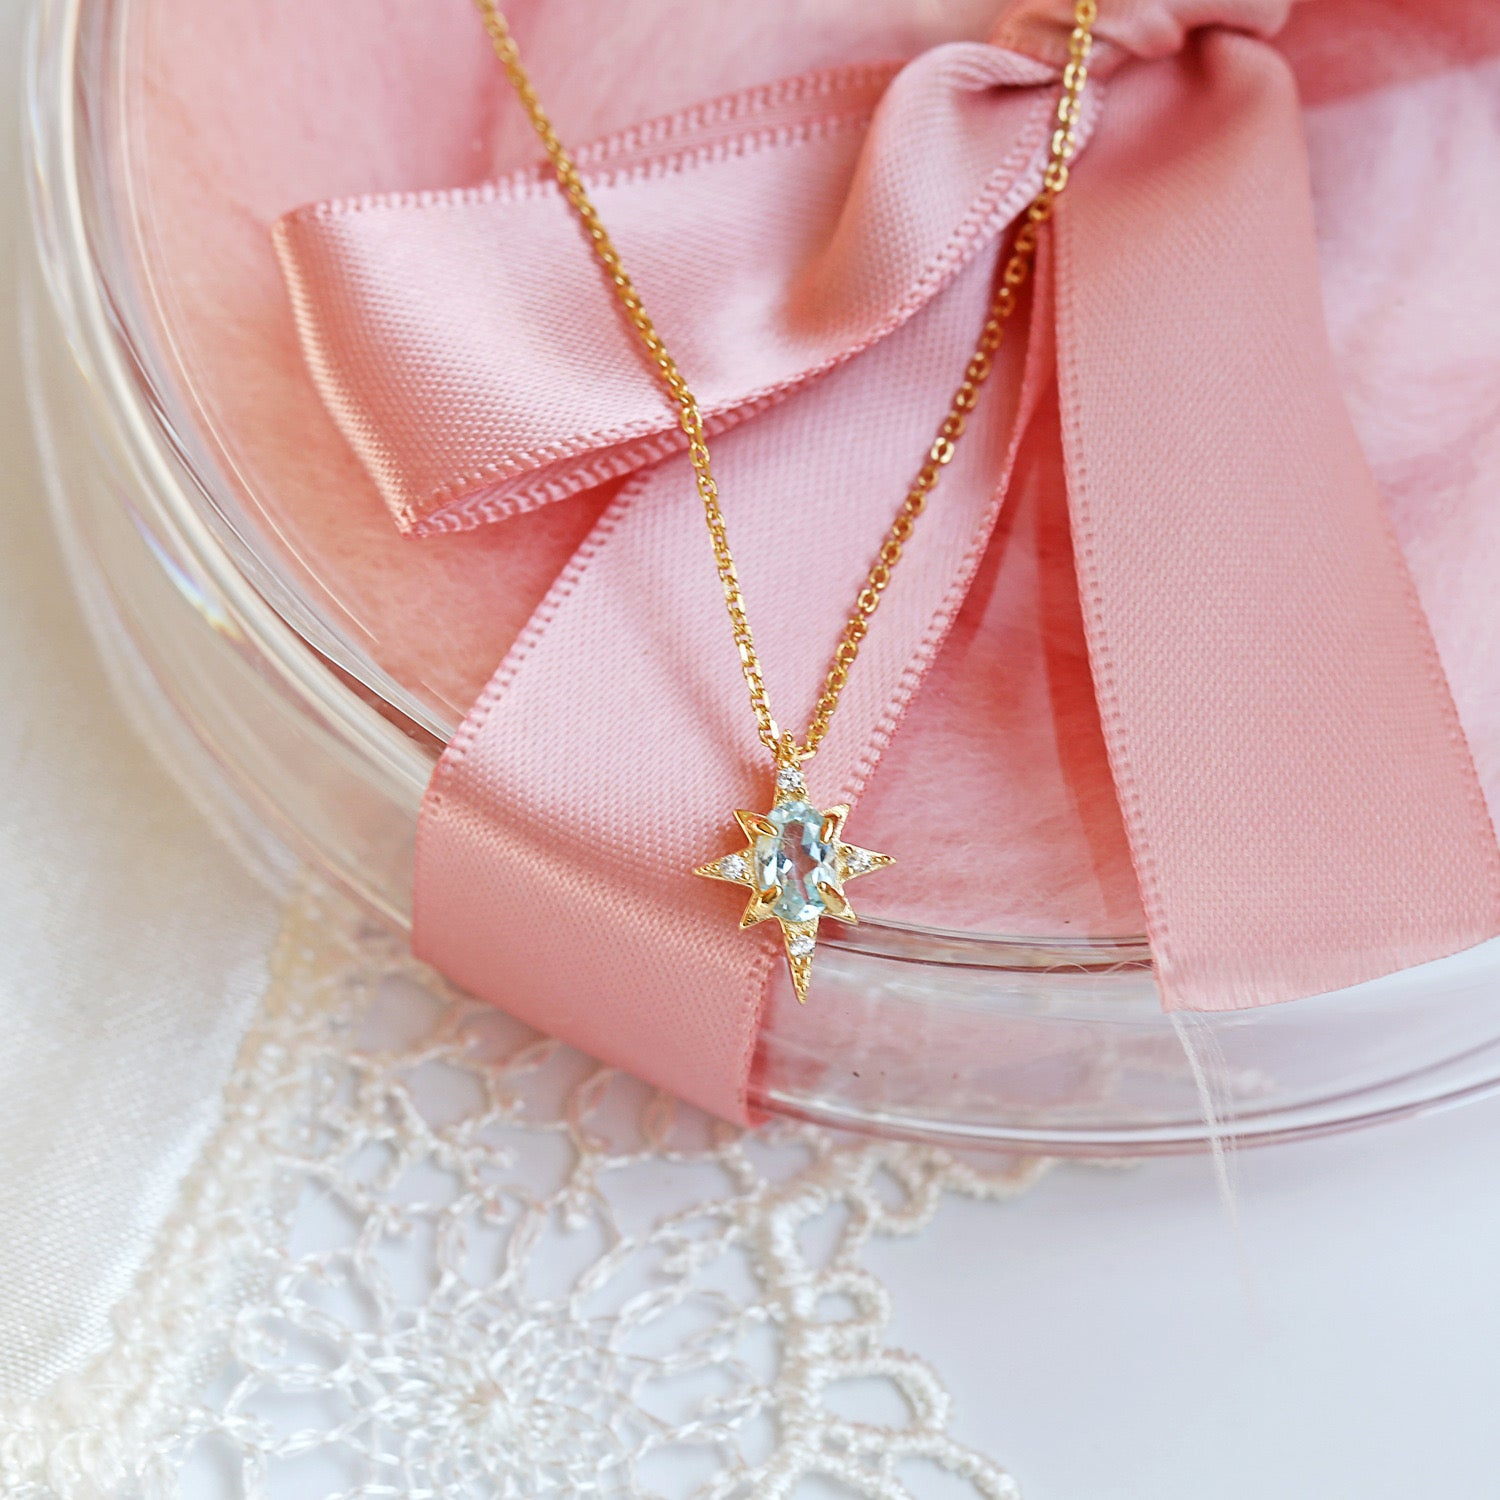 Ocean Star Aquamarine Necklace